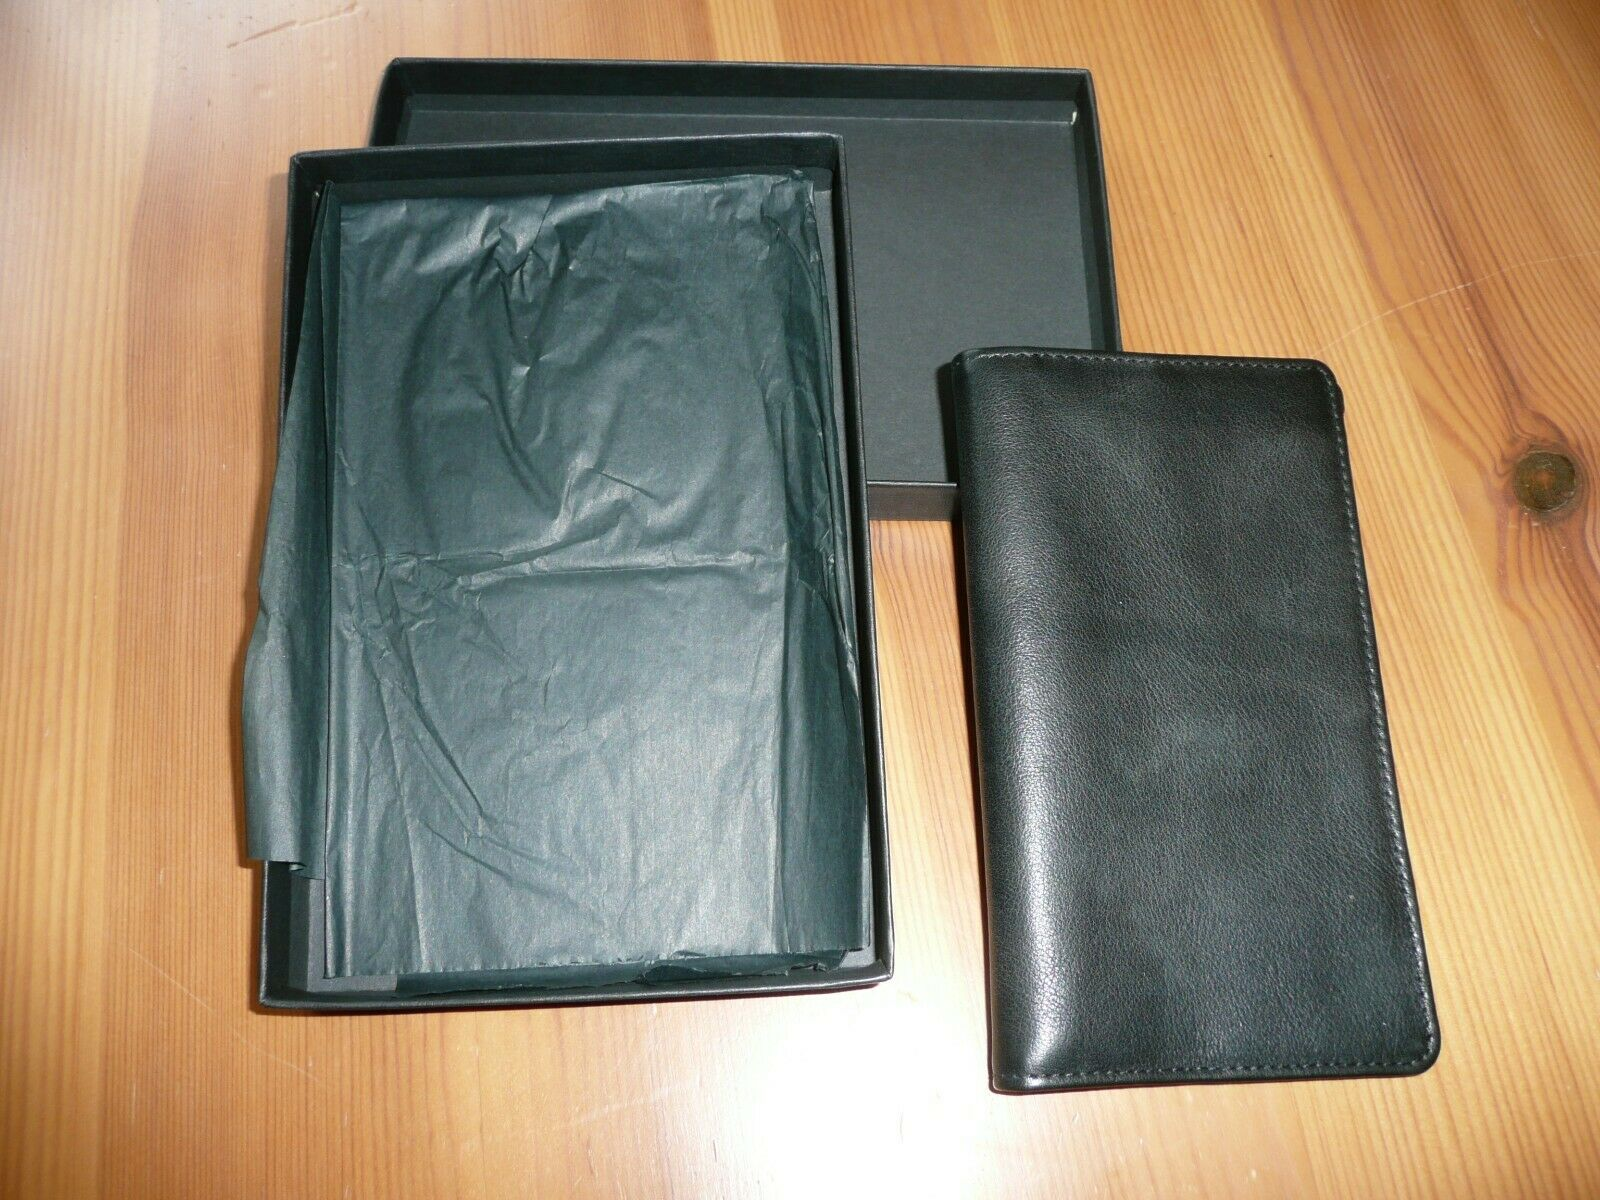 Daines and Hathaway Men's Tall Leather Wallet New in Box Chocolate Brown